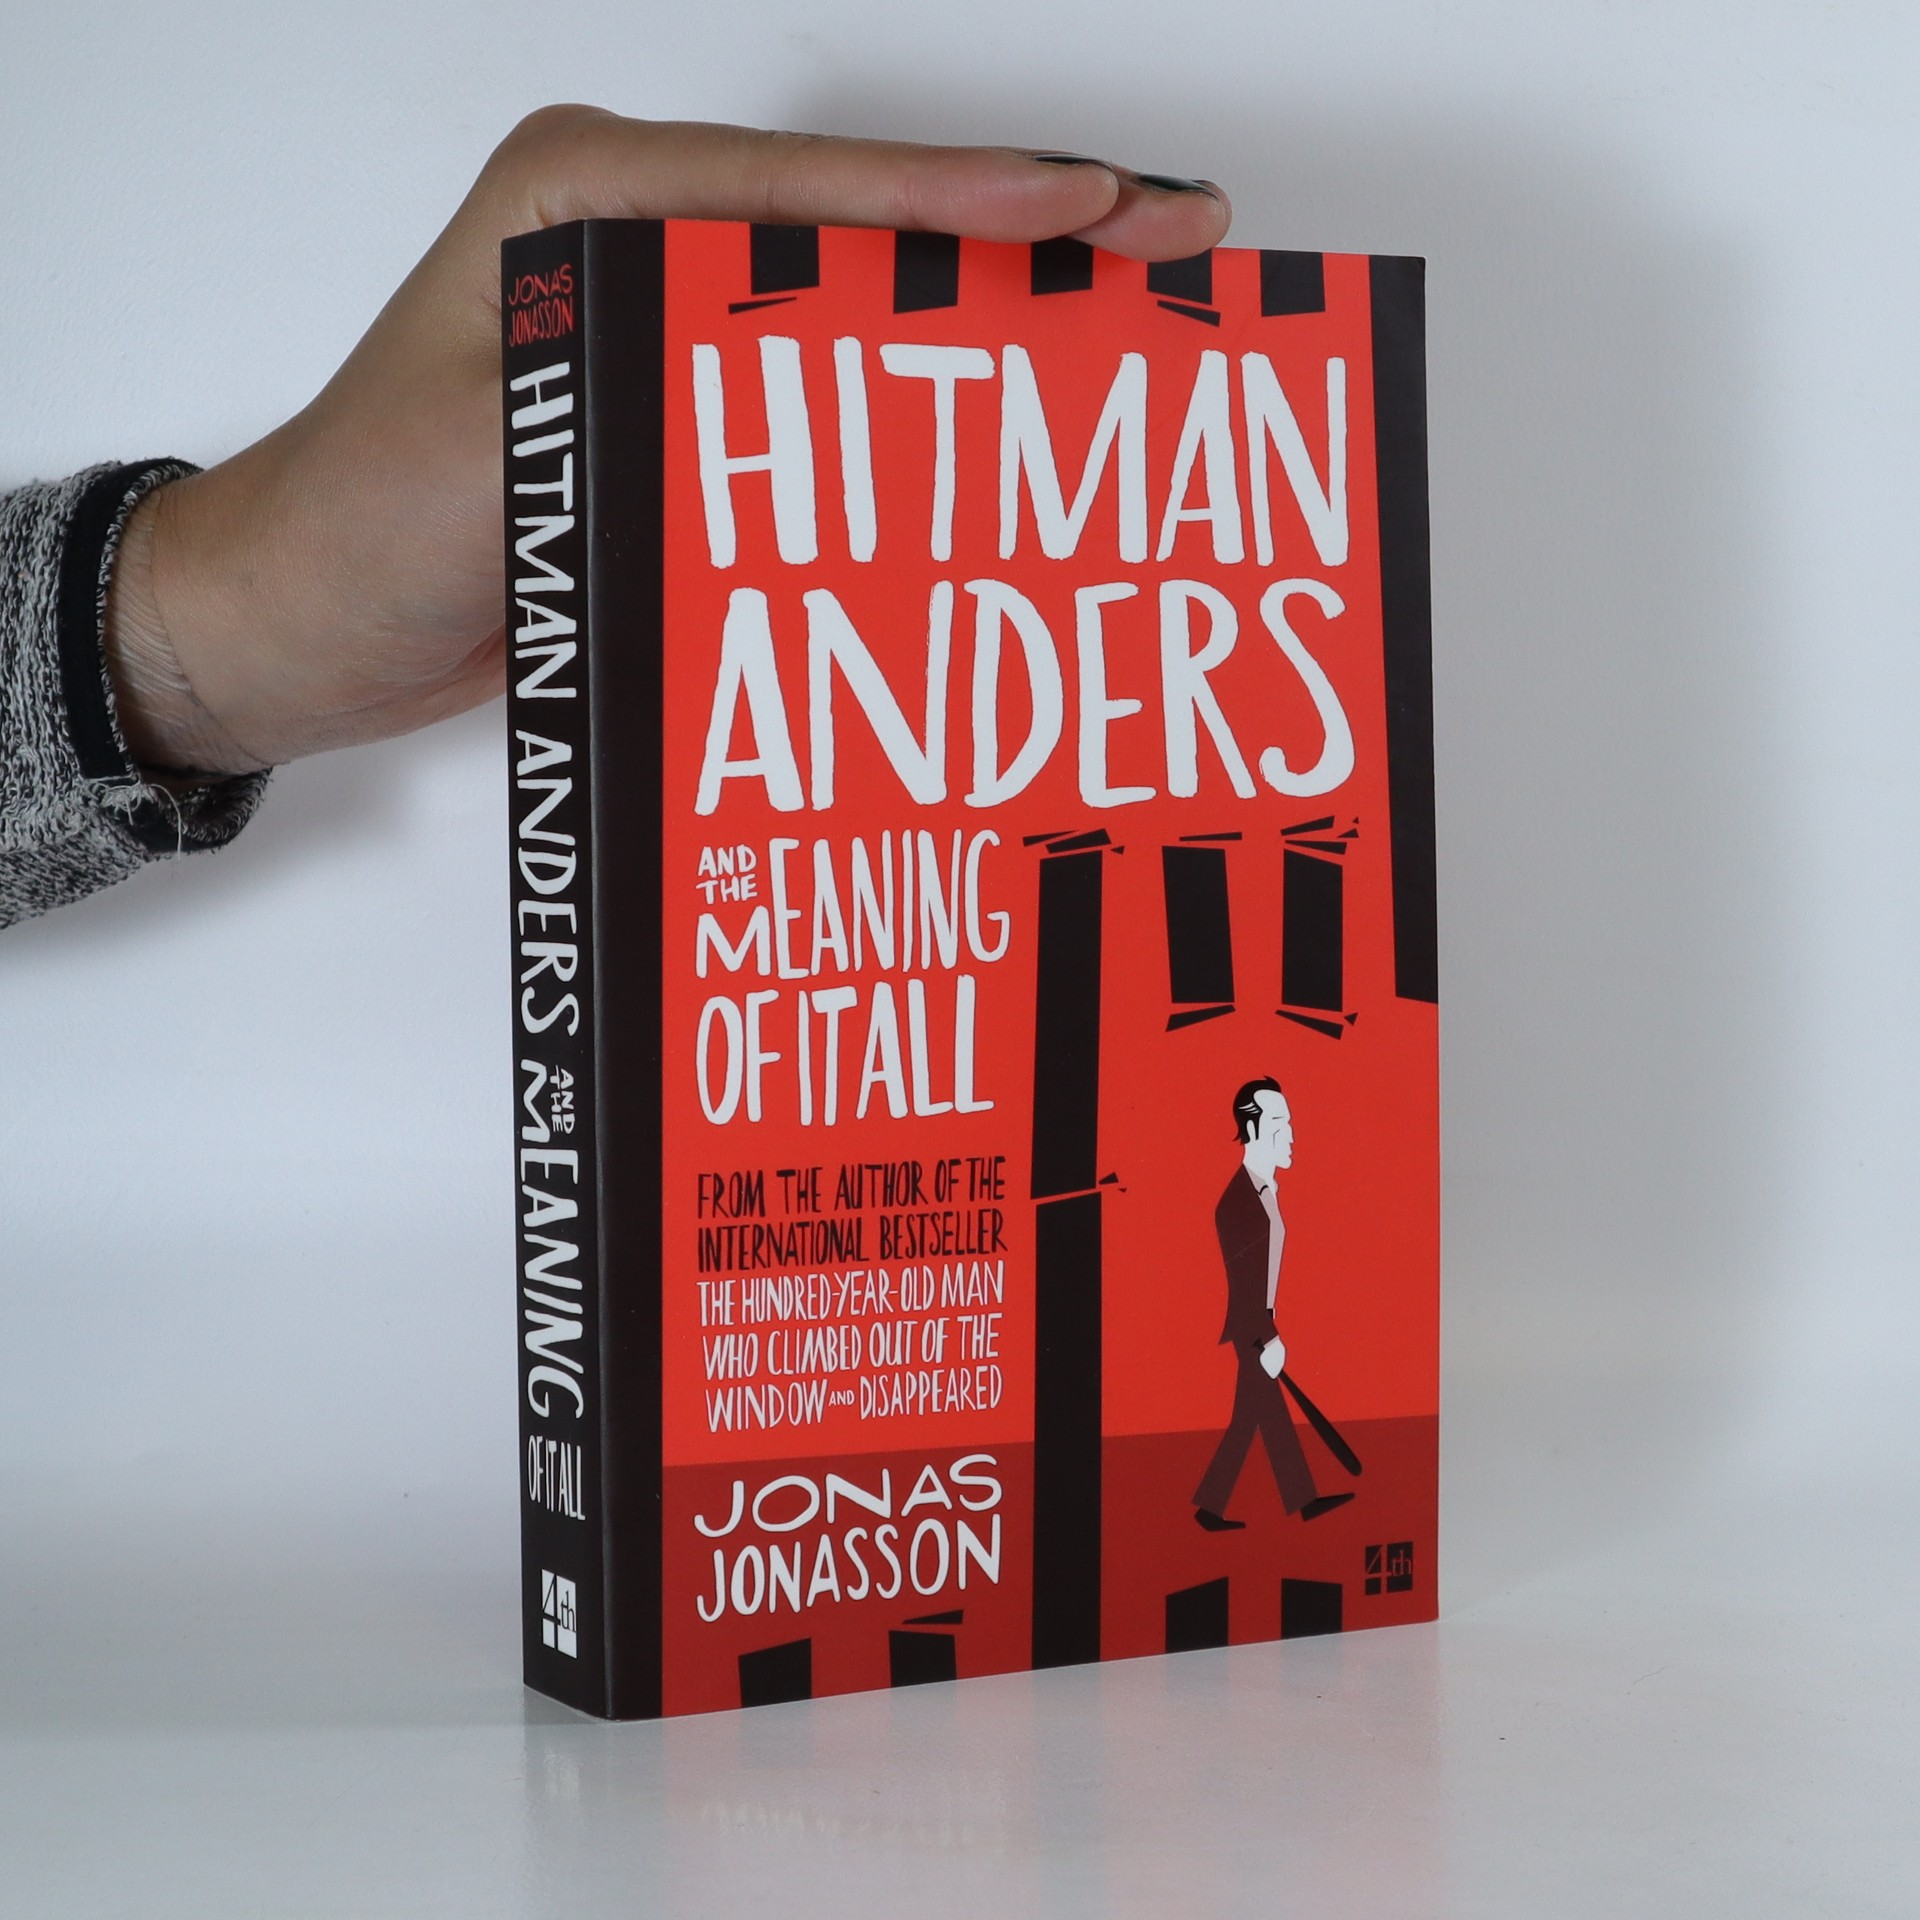 antikvární kniha Hitman Anders and the Meaning of It All, 2016